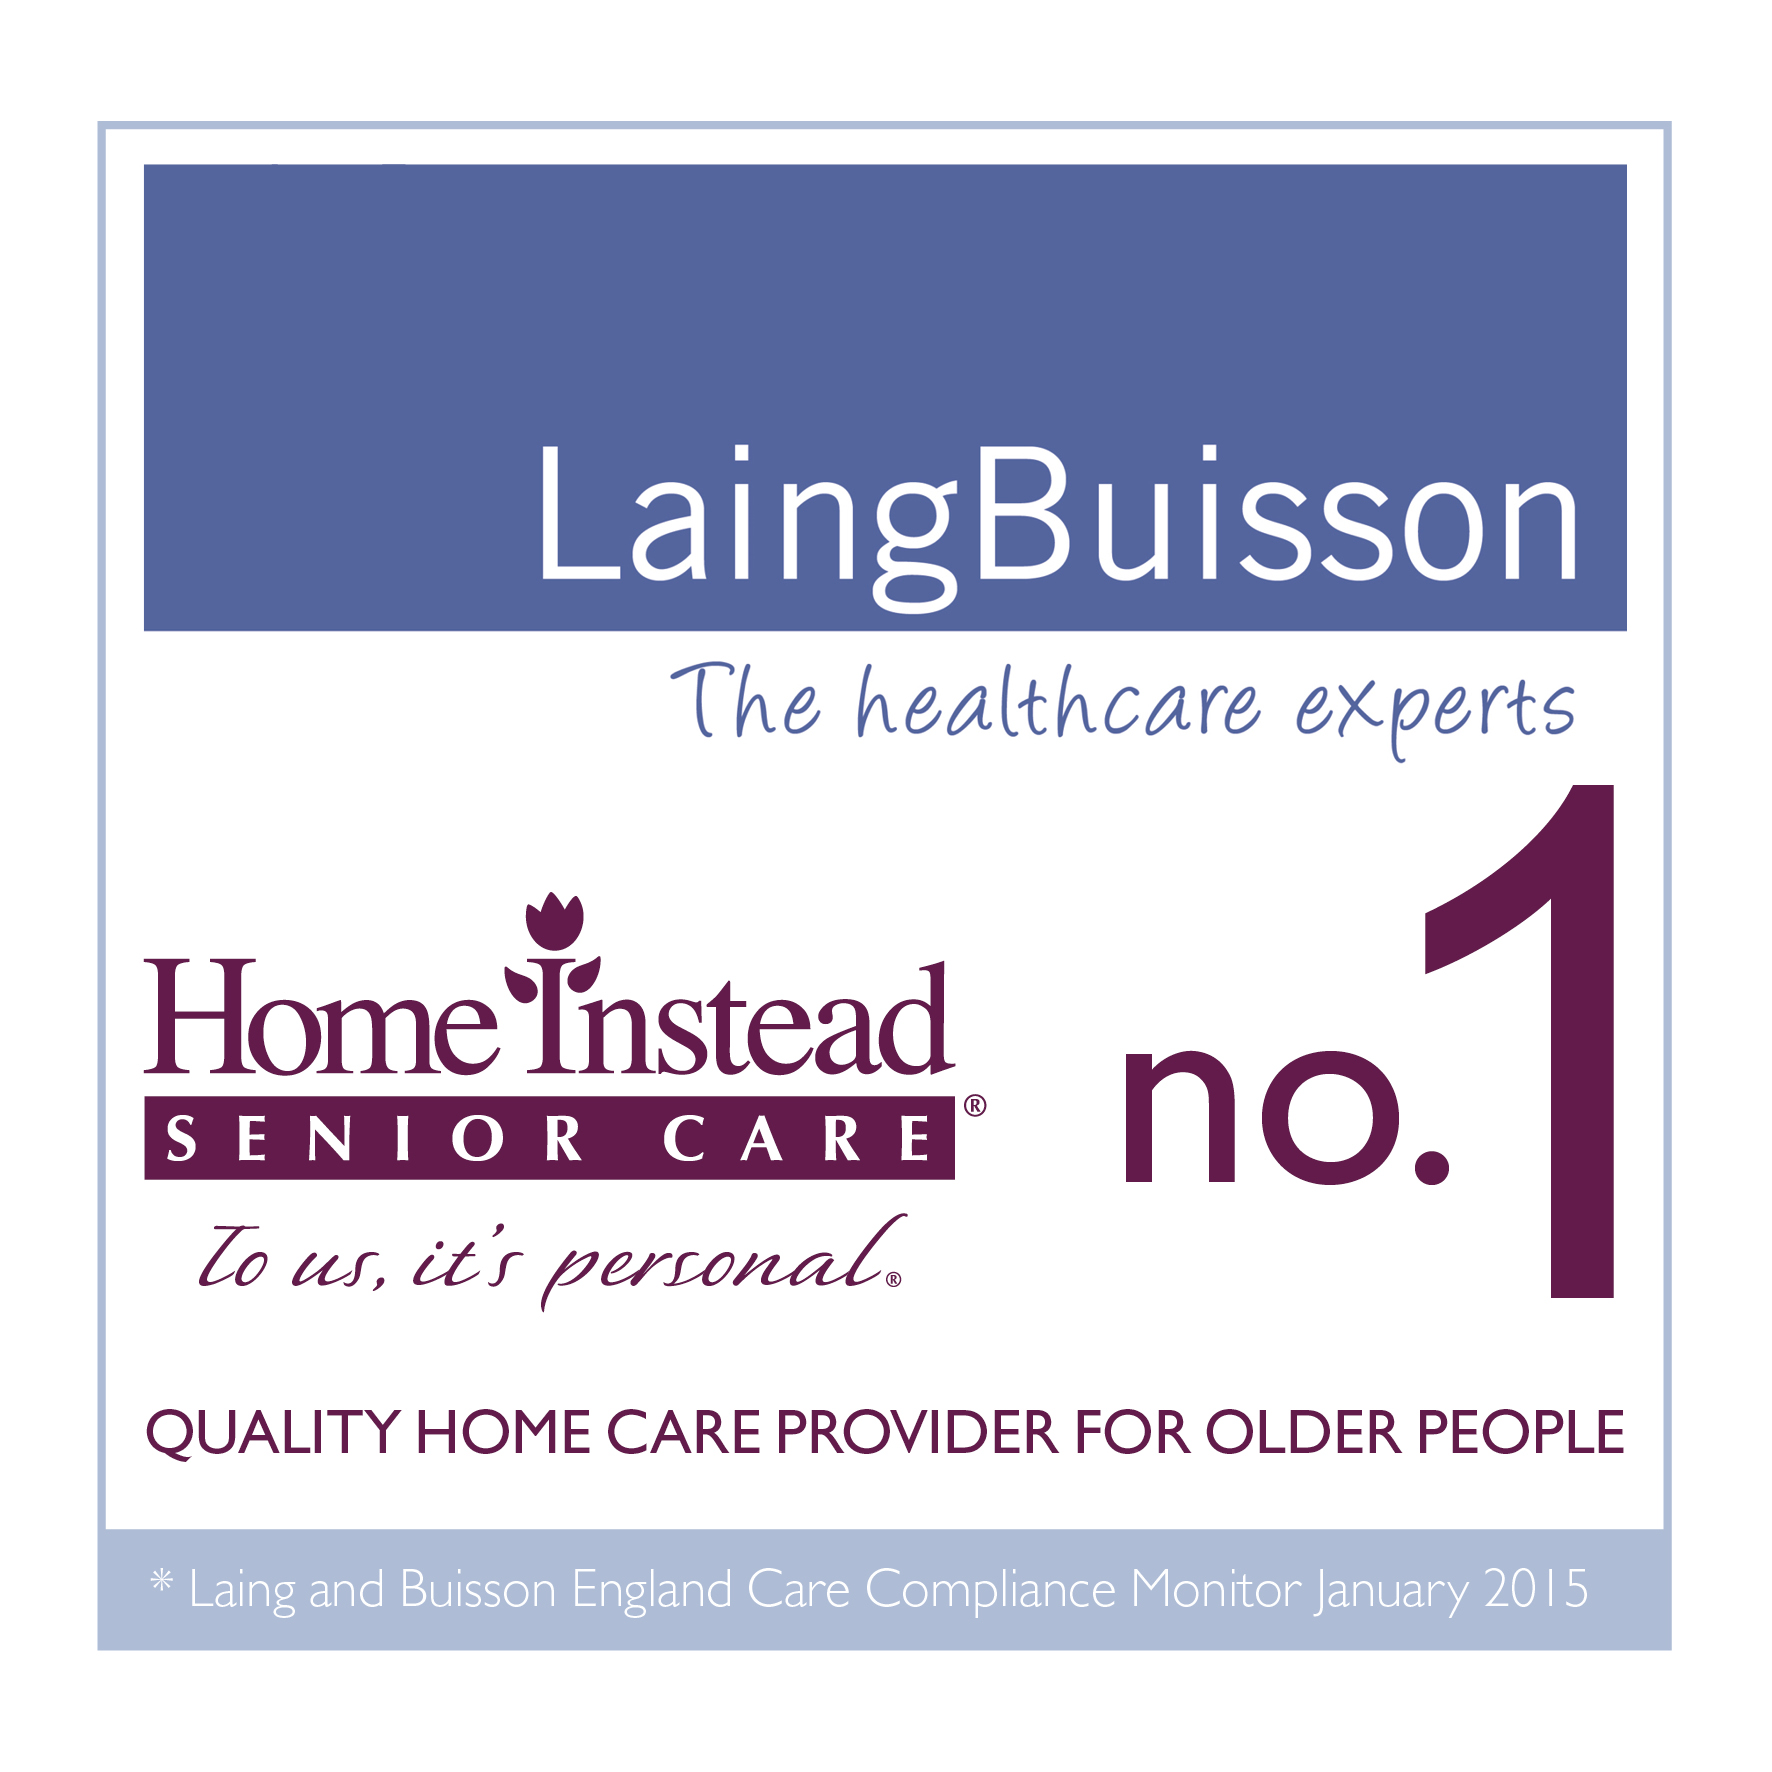 Home Instead Senior Care - Home Instead is No. 1 for Home ...